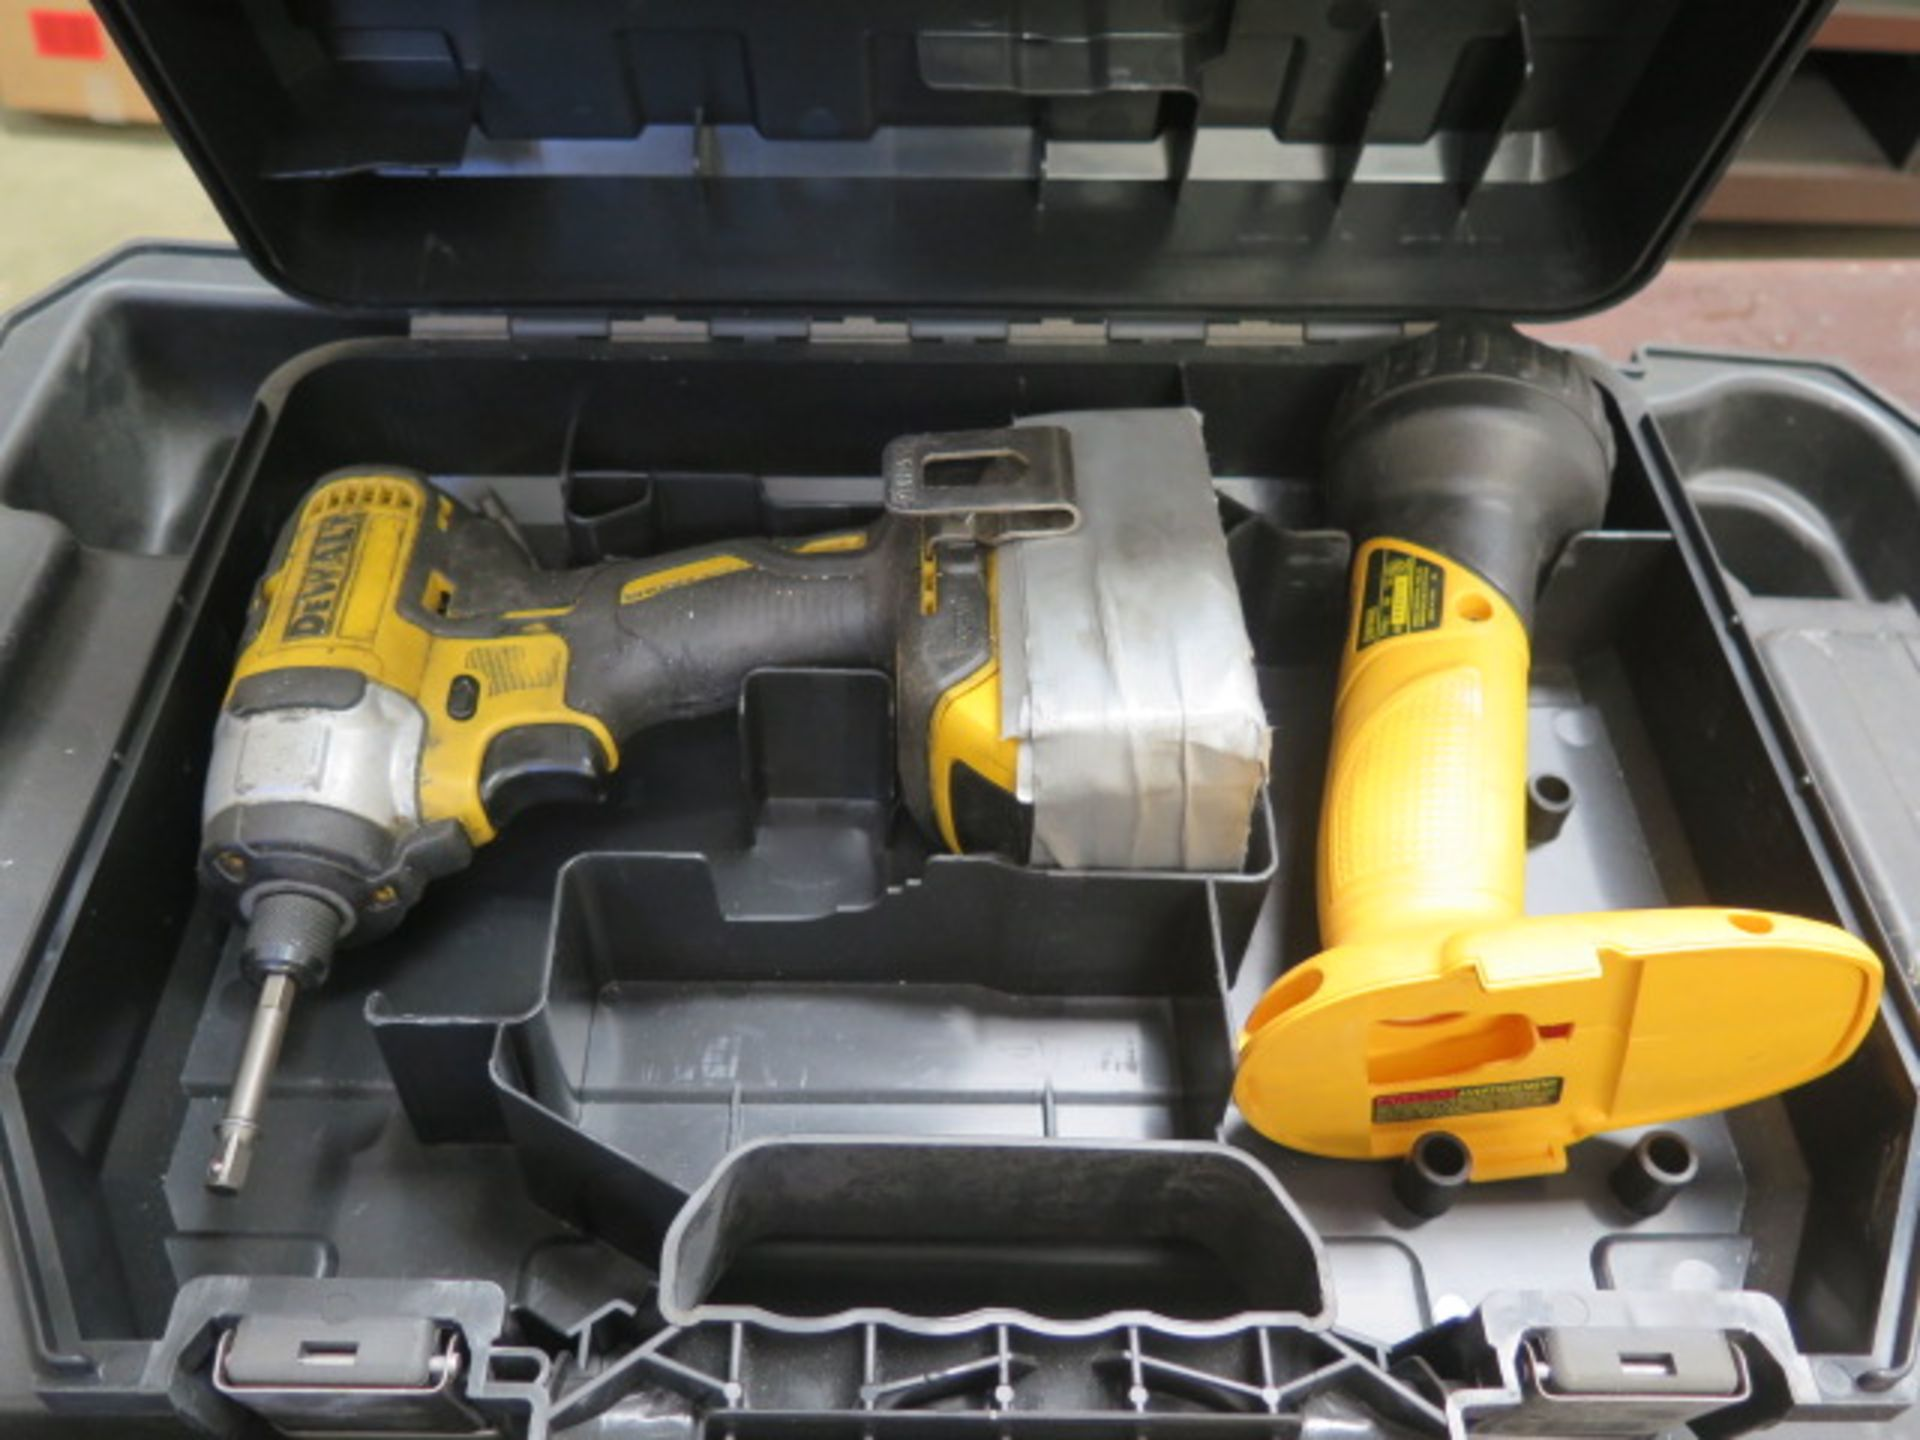 DeWalt Cordless Tools w/ Charger (SOLD AS-IS - NO WARRANTY) - Image 3 of 9